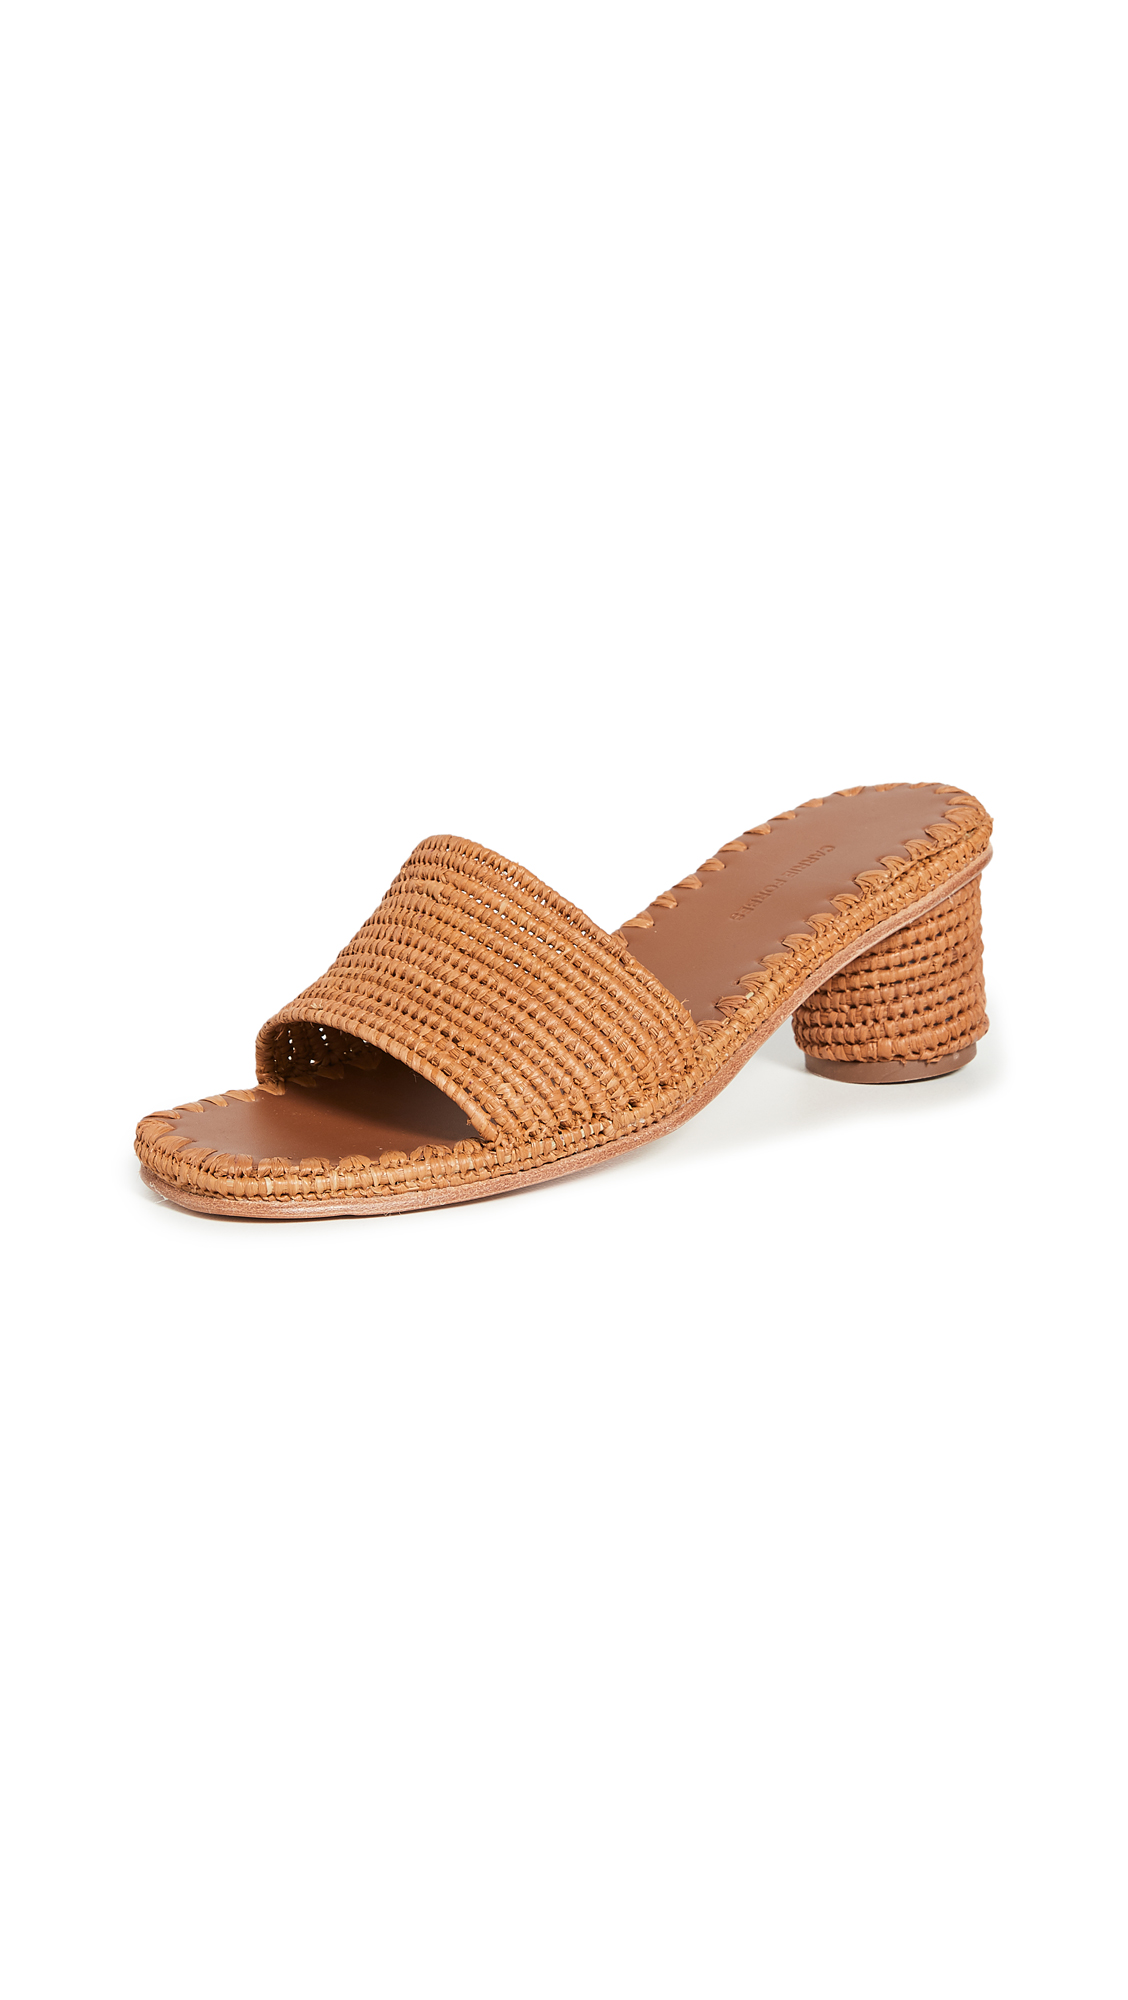 Buy Carrie Forbes Bou Heeled Mules online, shop Carrie Forbes